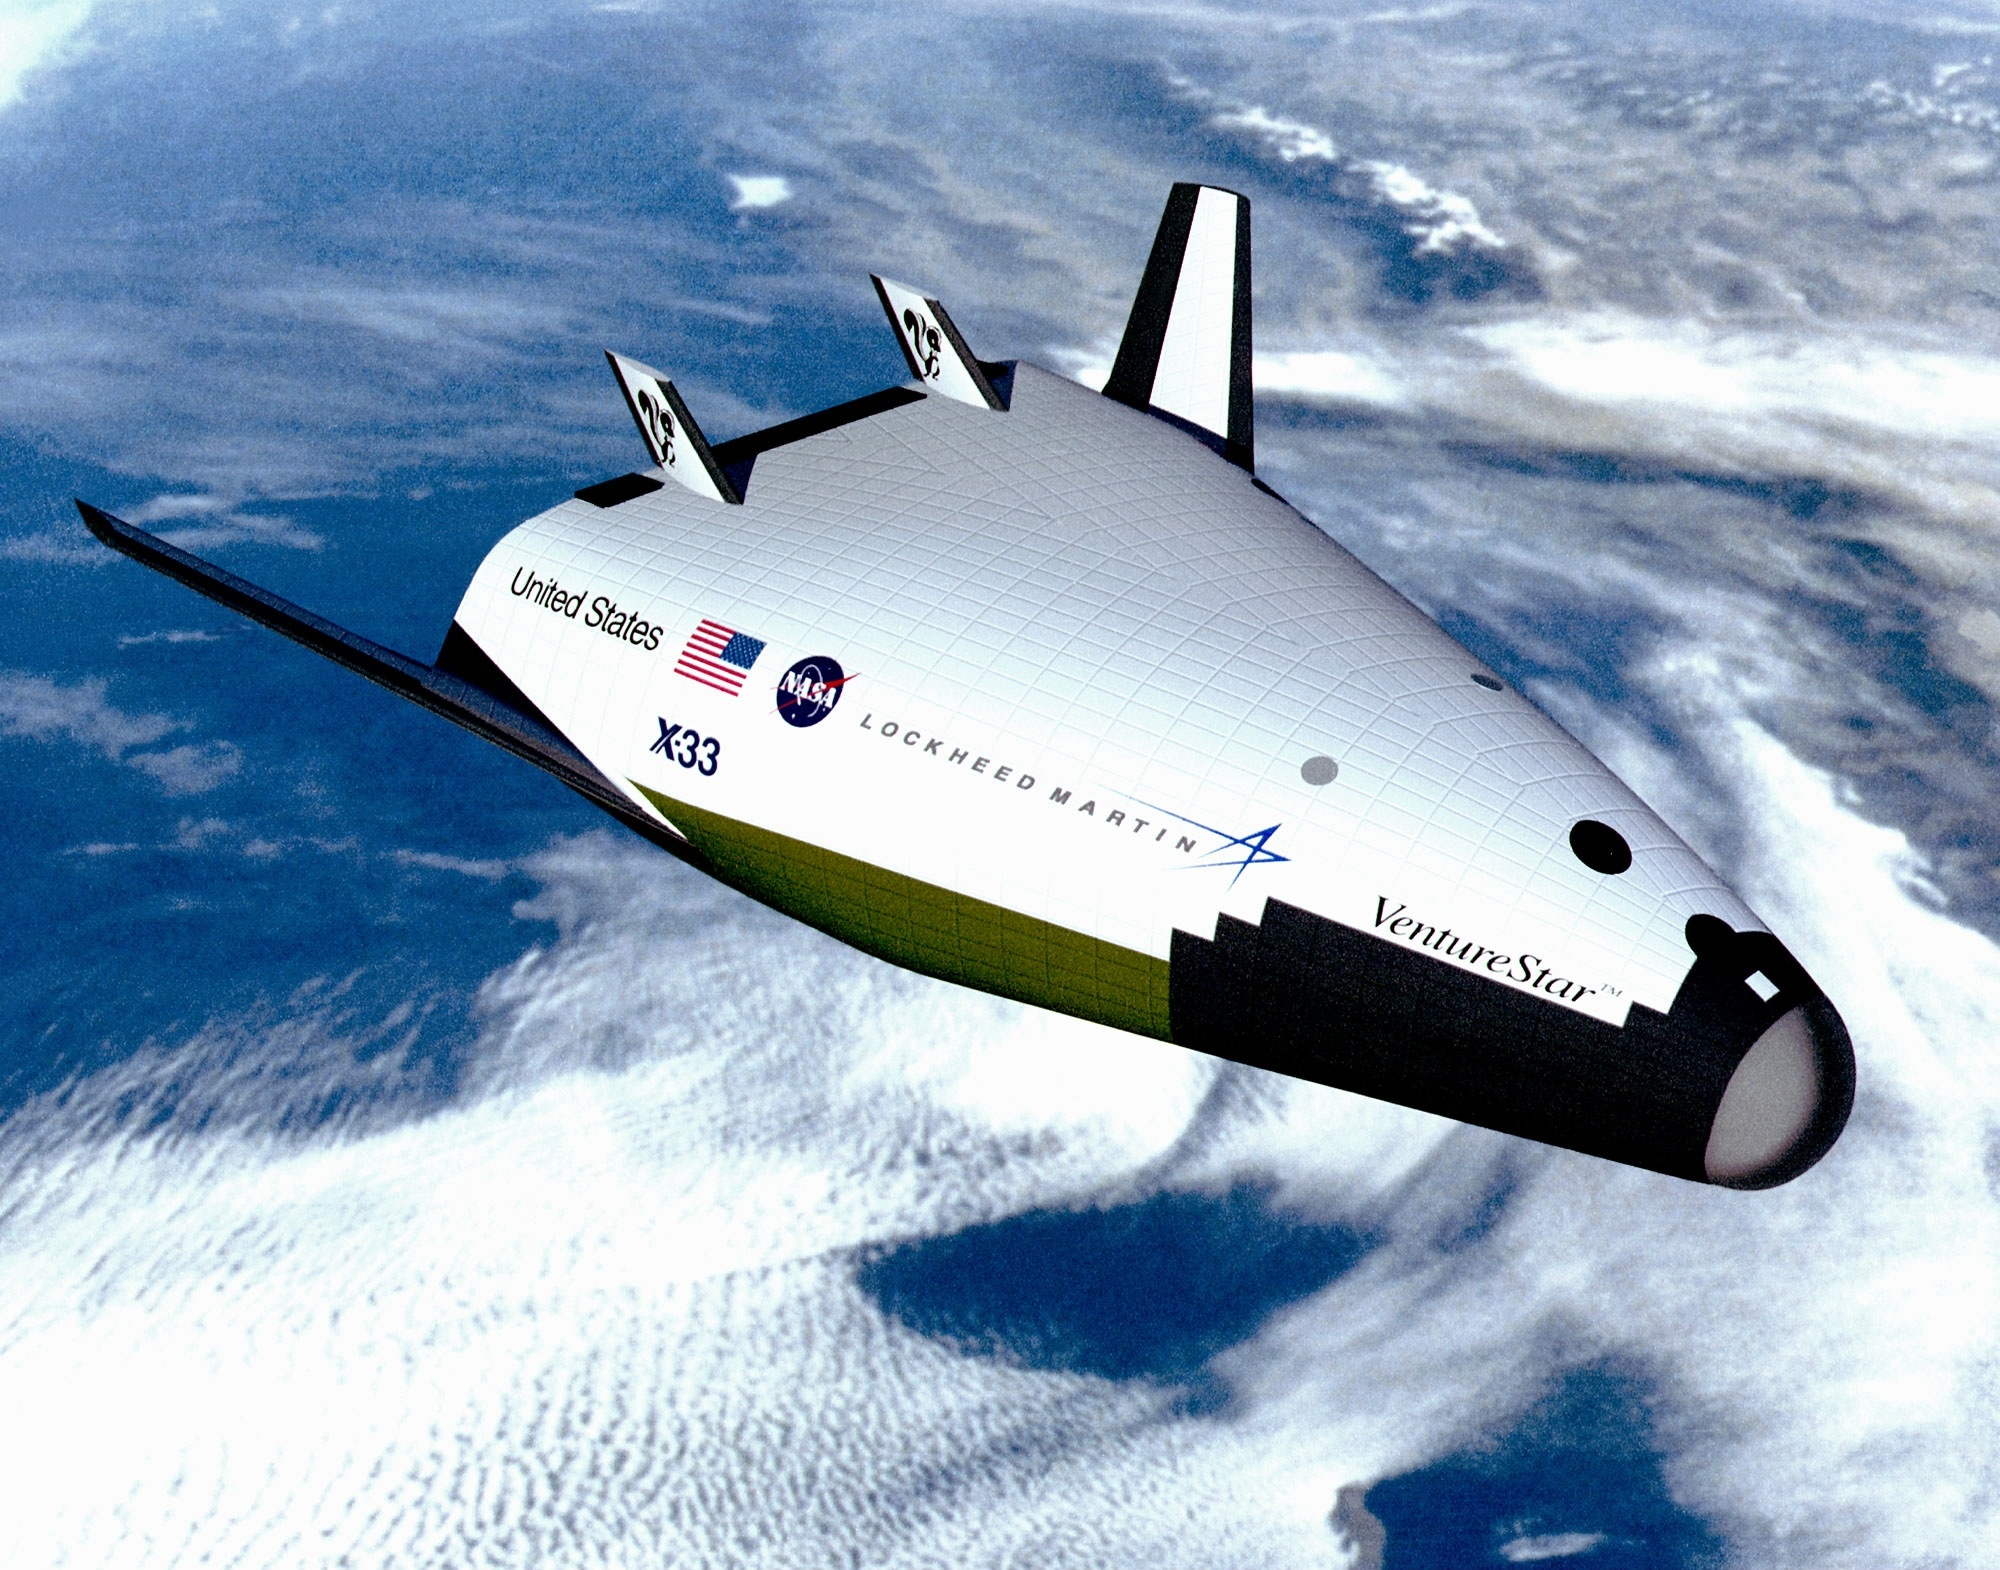 Next Generation of Commercial Spacecraft